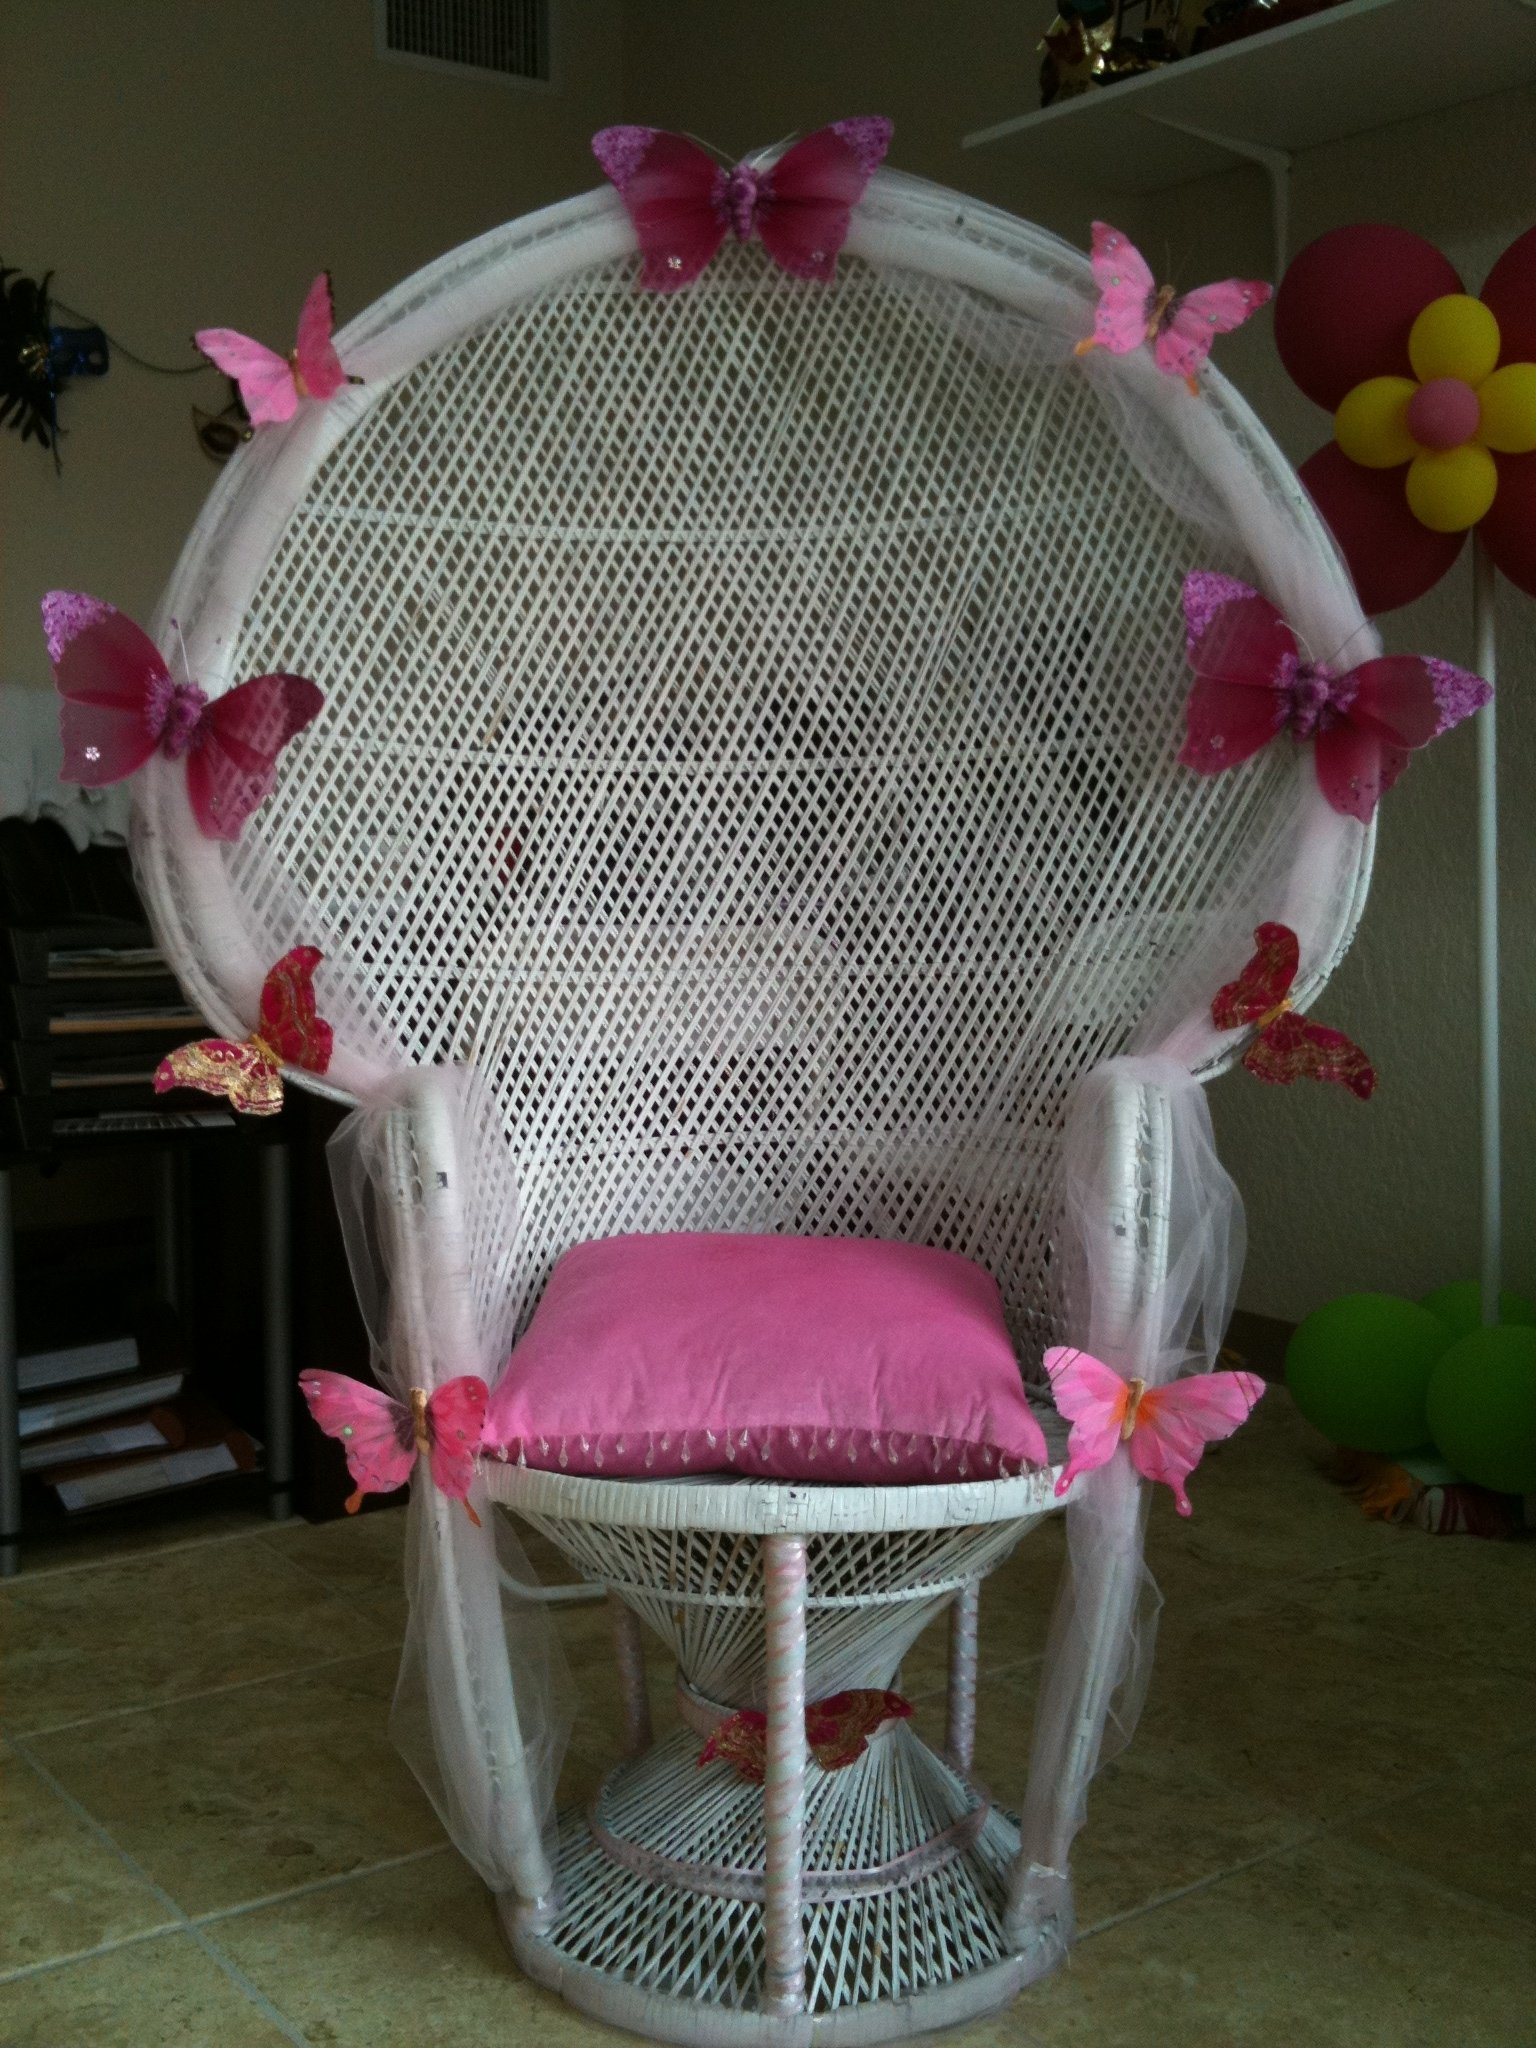 10 Ideal Baby Shower Ideas On Pinterest nice decoration ideas baby shower mothers chair free baby shower 1